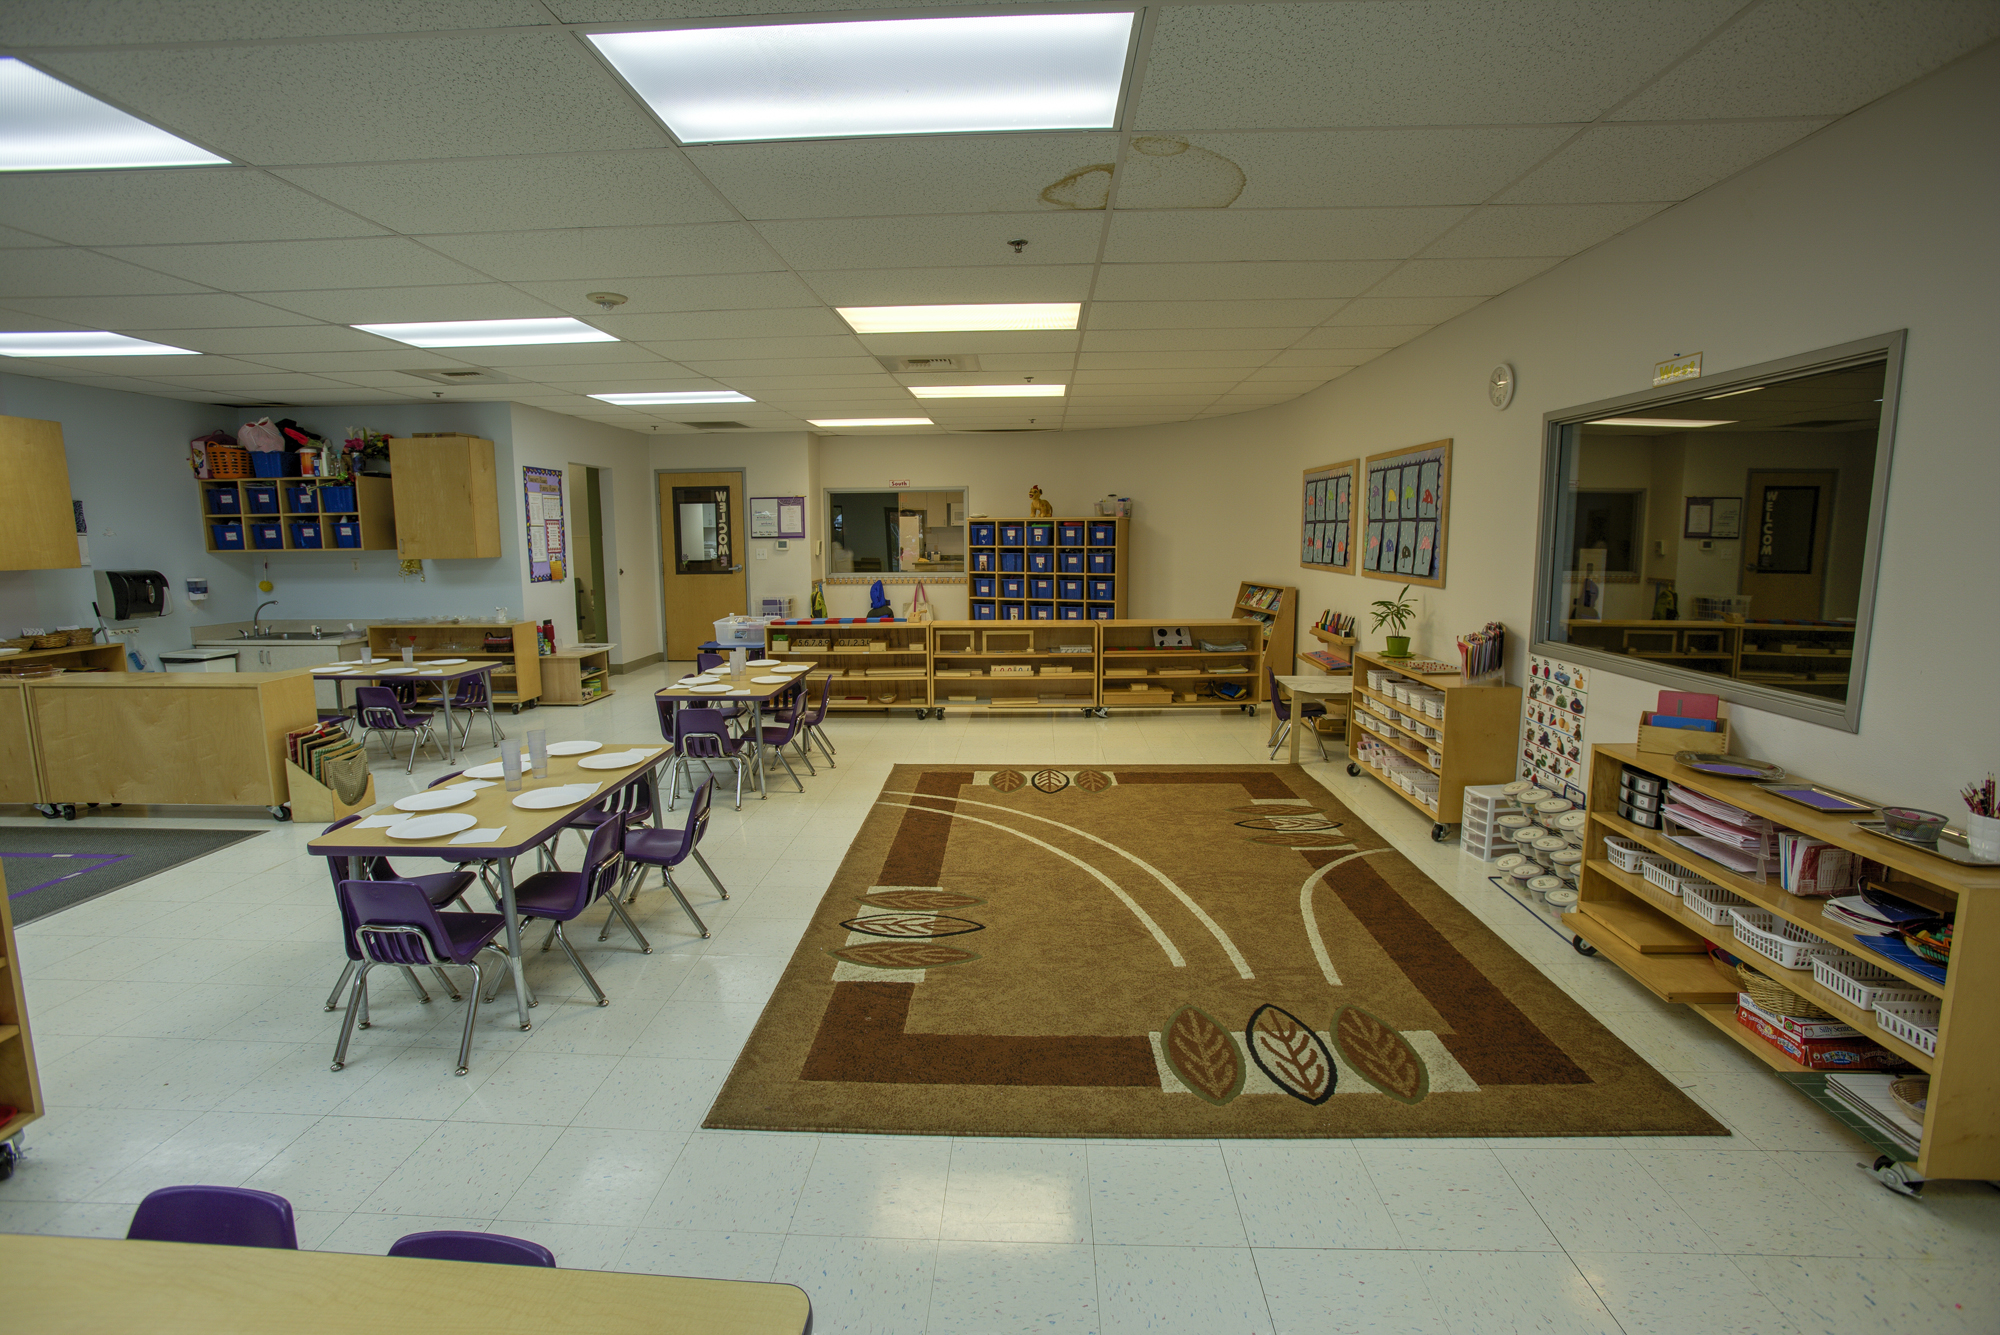 Little-Blossom-Montessori-Preschool-and-Daycare-Services-Sacramento-Natomas_16.jpg